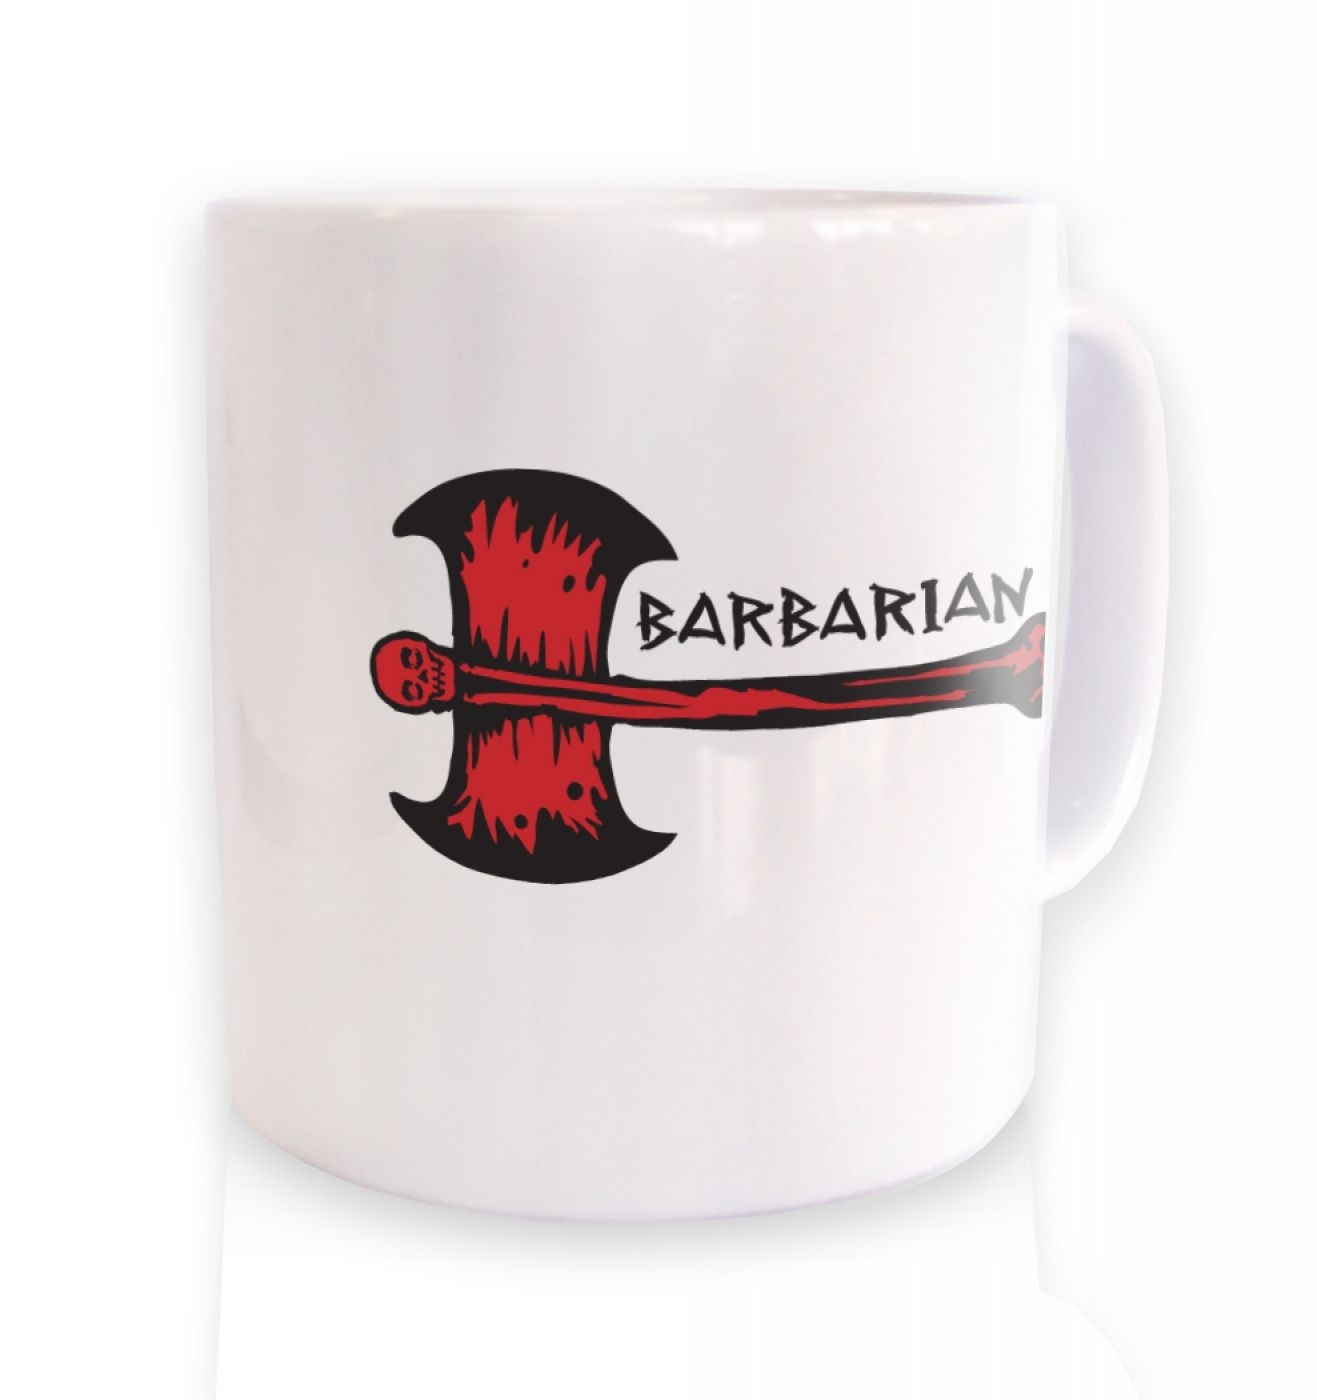 Red Barbarian Axe ceramic coffee mug